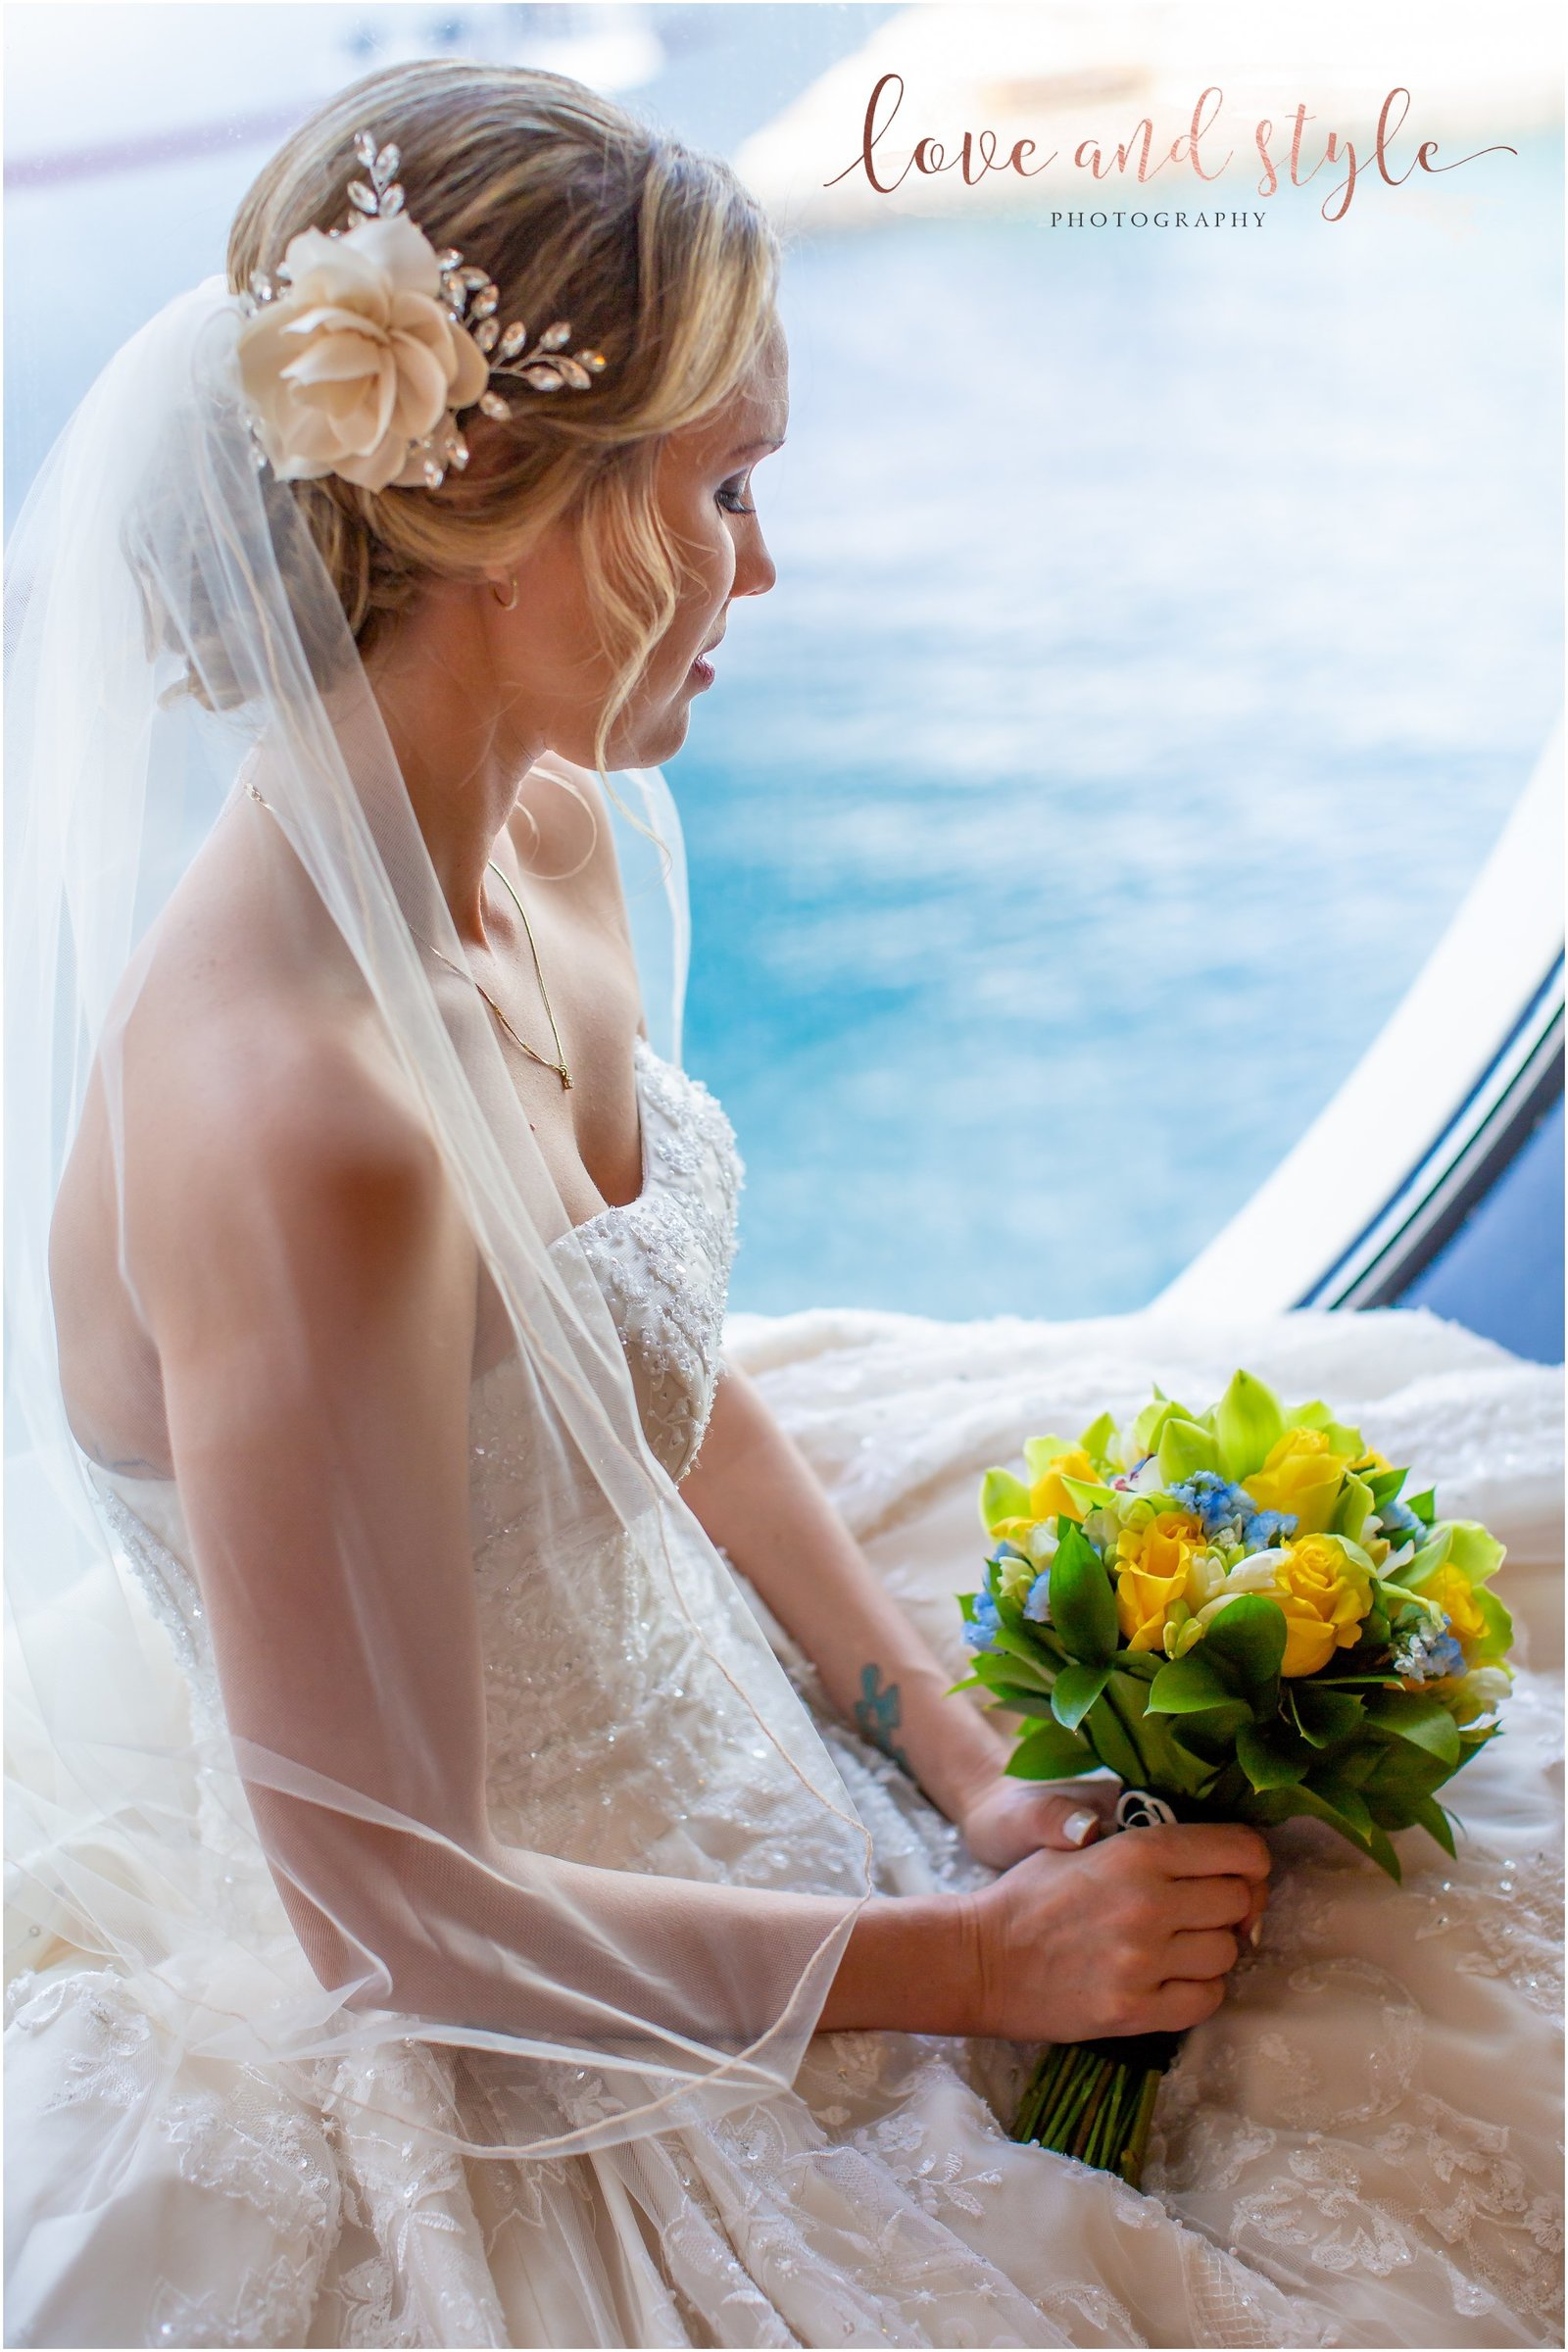 Disney Dream Cruise Wedding Photography bridal portrait with bride sitting in the porthole holding her flowers